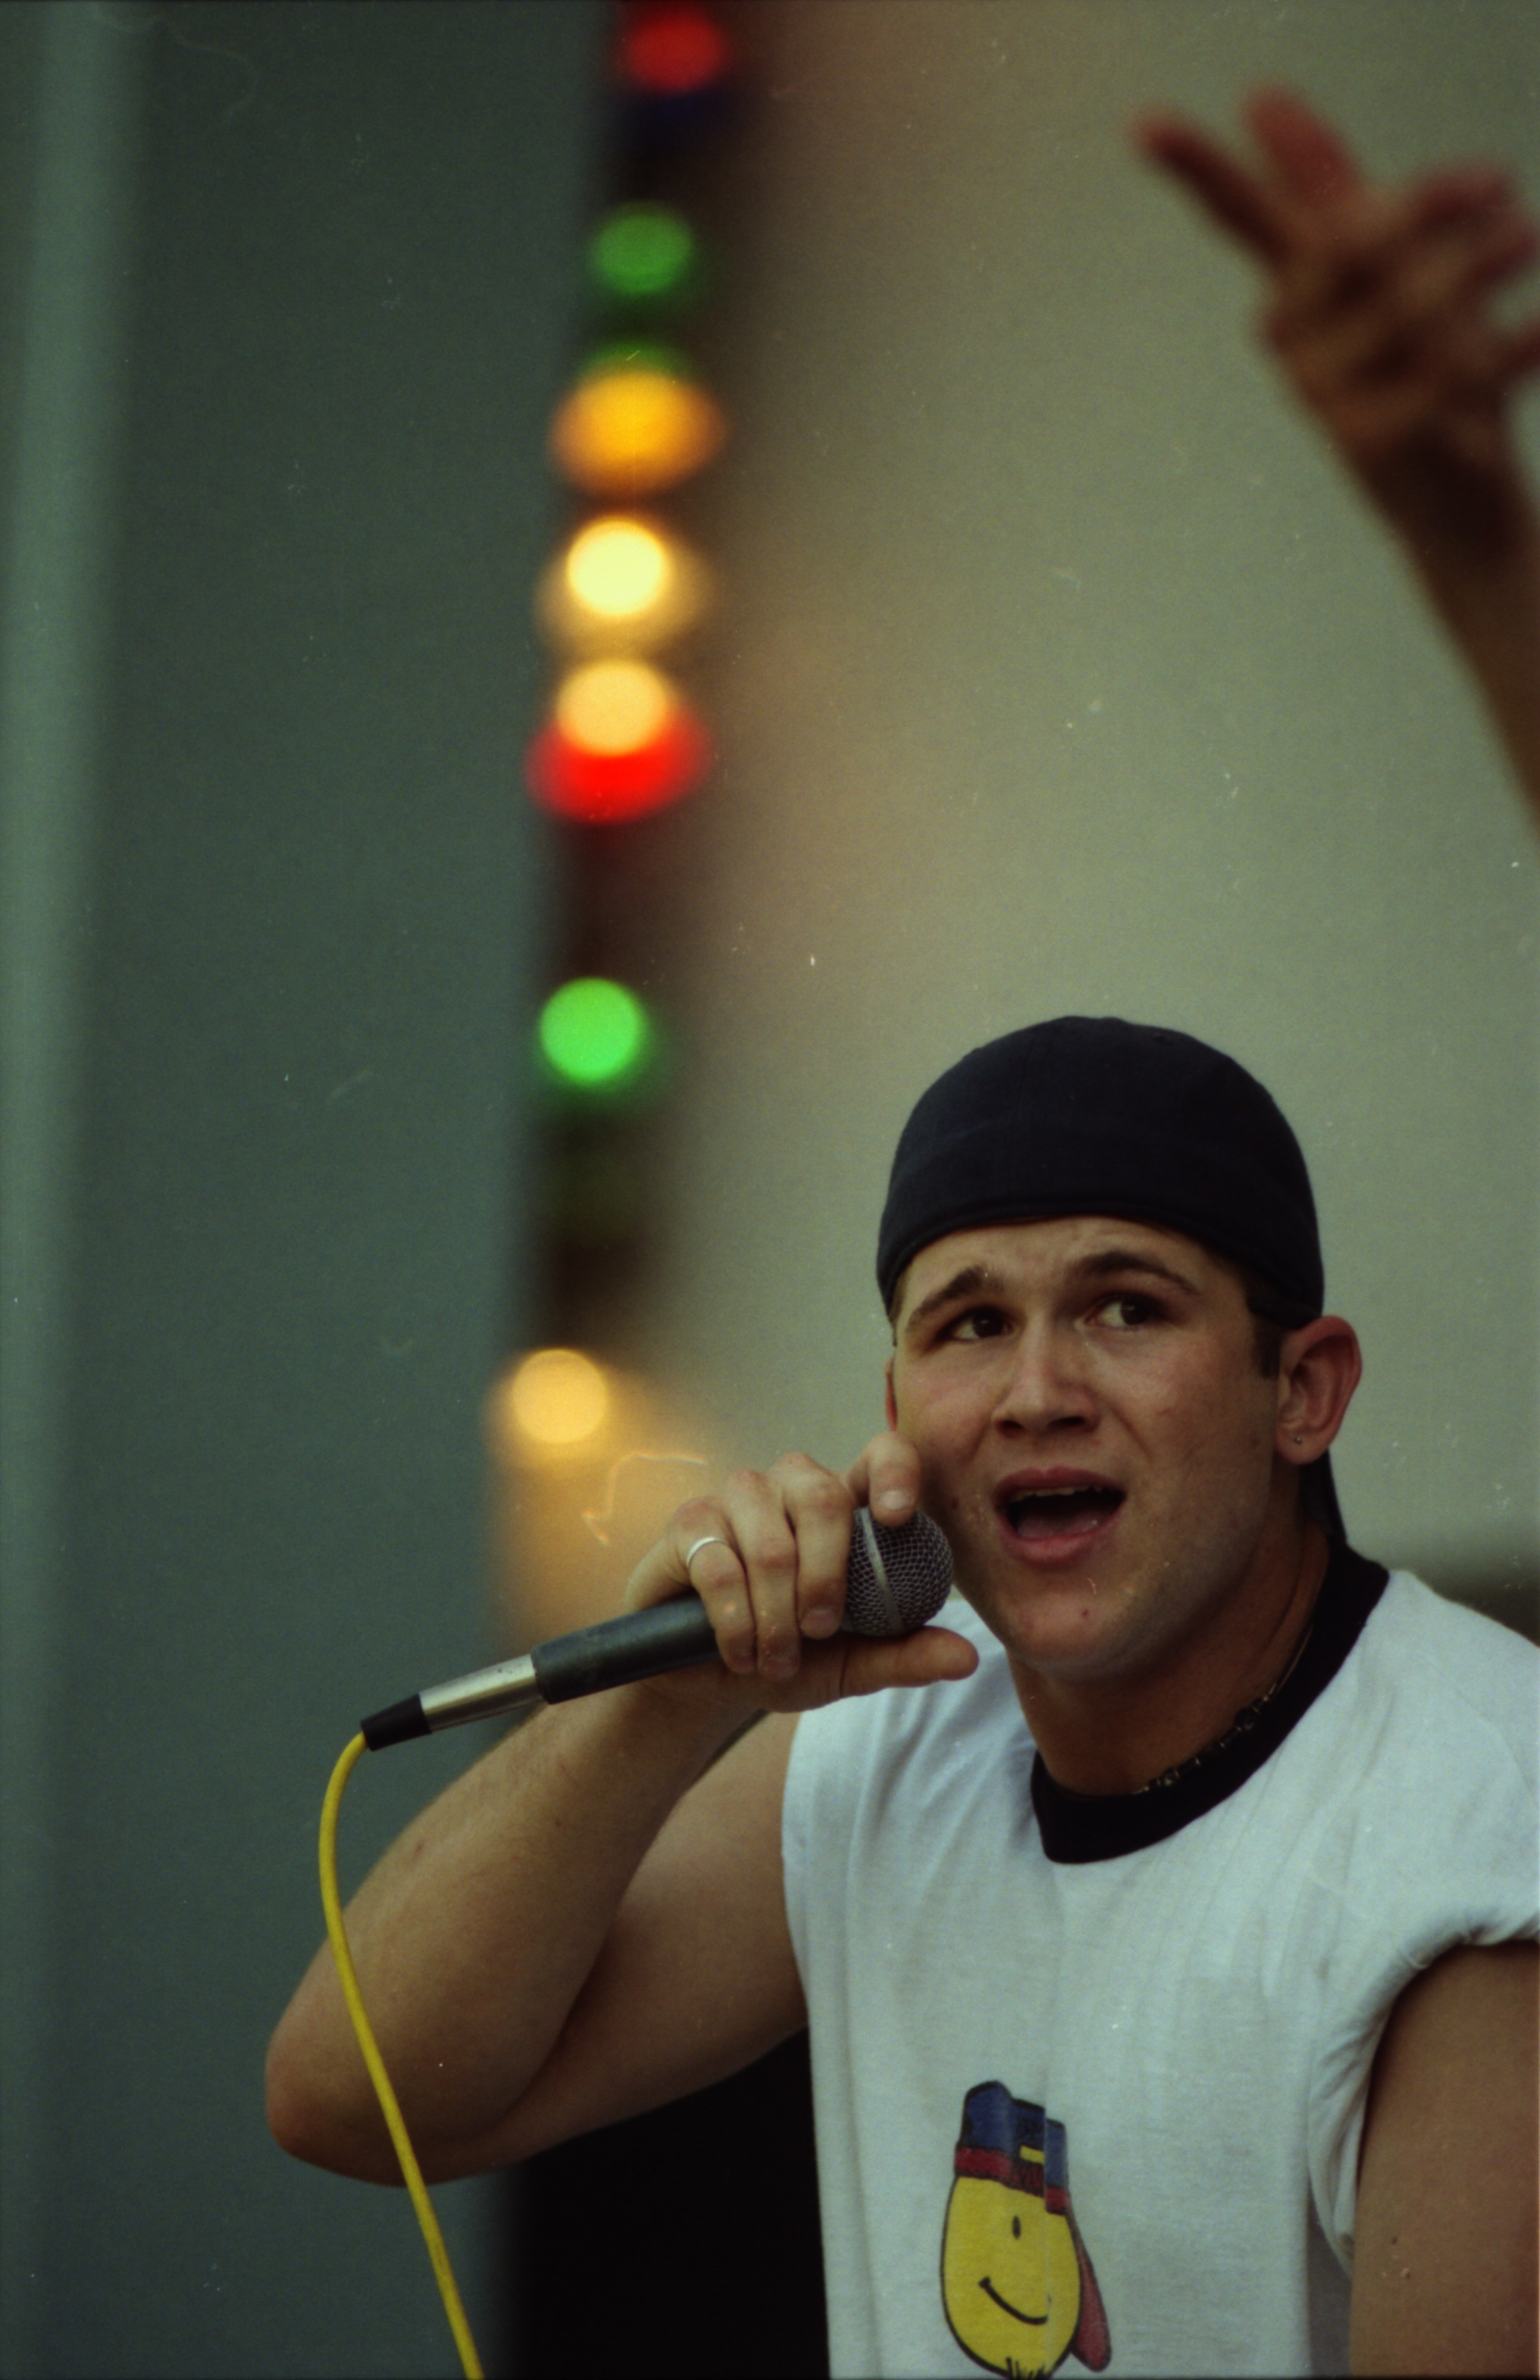 Bob Lillie of The Committee, a local hip-hop band, performs at Comstock, West Park, June 13, 1996 image